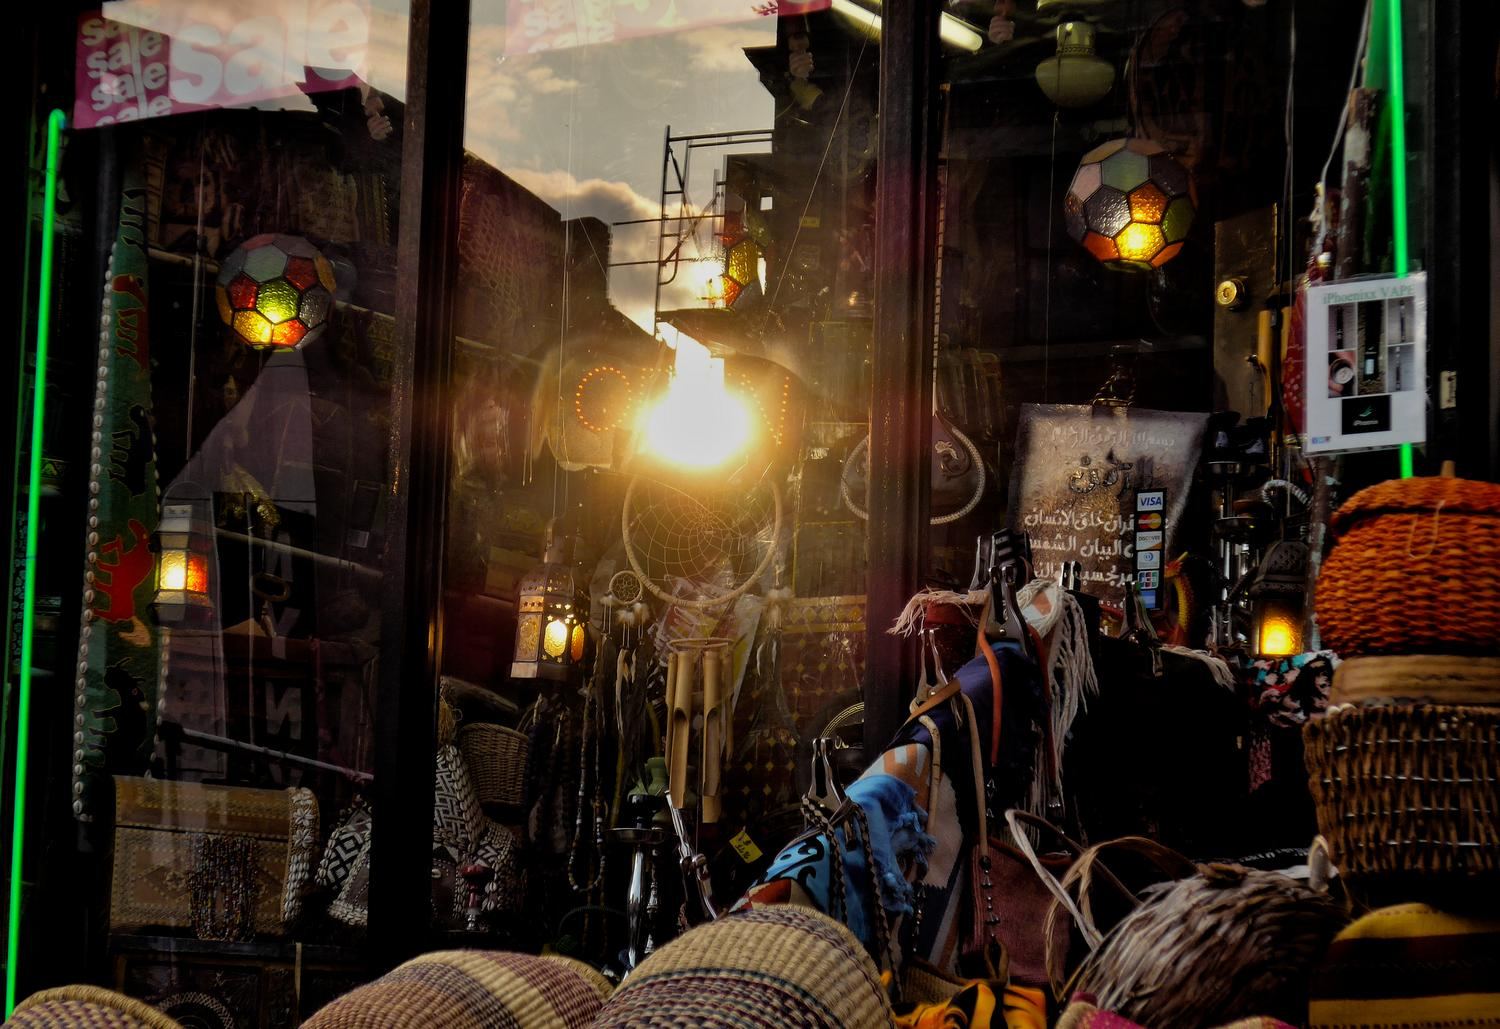 - The sunset reflected in a shop window. - Adams Morgan, Washington DC, Panasonic DMC-LF1, Mediterranean Bistro, sunset - Tony Karp, design, art, photography, techno-impressionist, techno-impressionism, aerial photography , drone , drones , dji , mavic pro , video , 3D printing - Books -